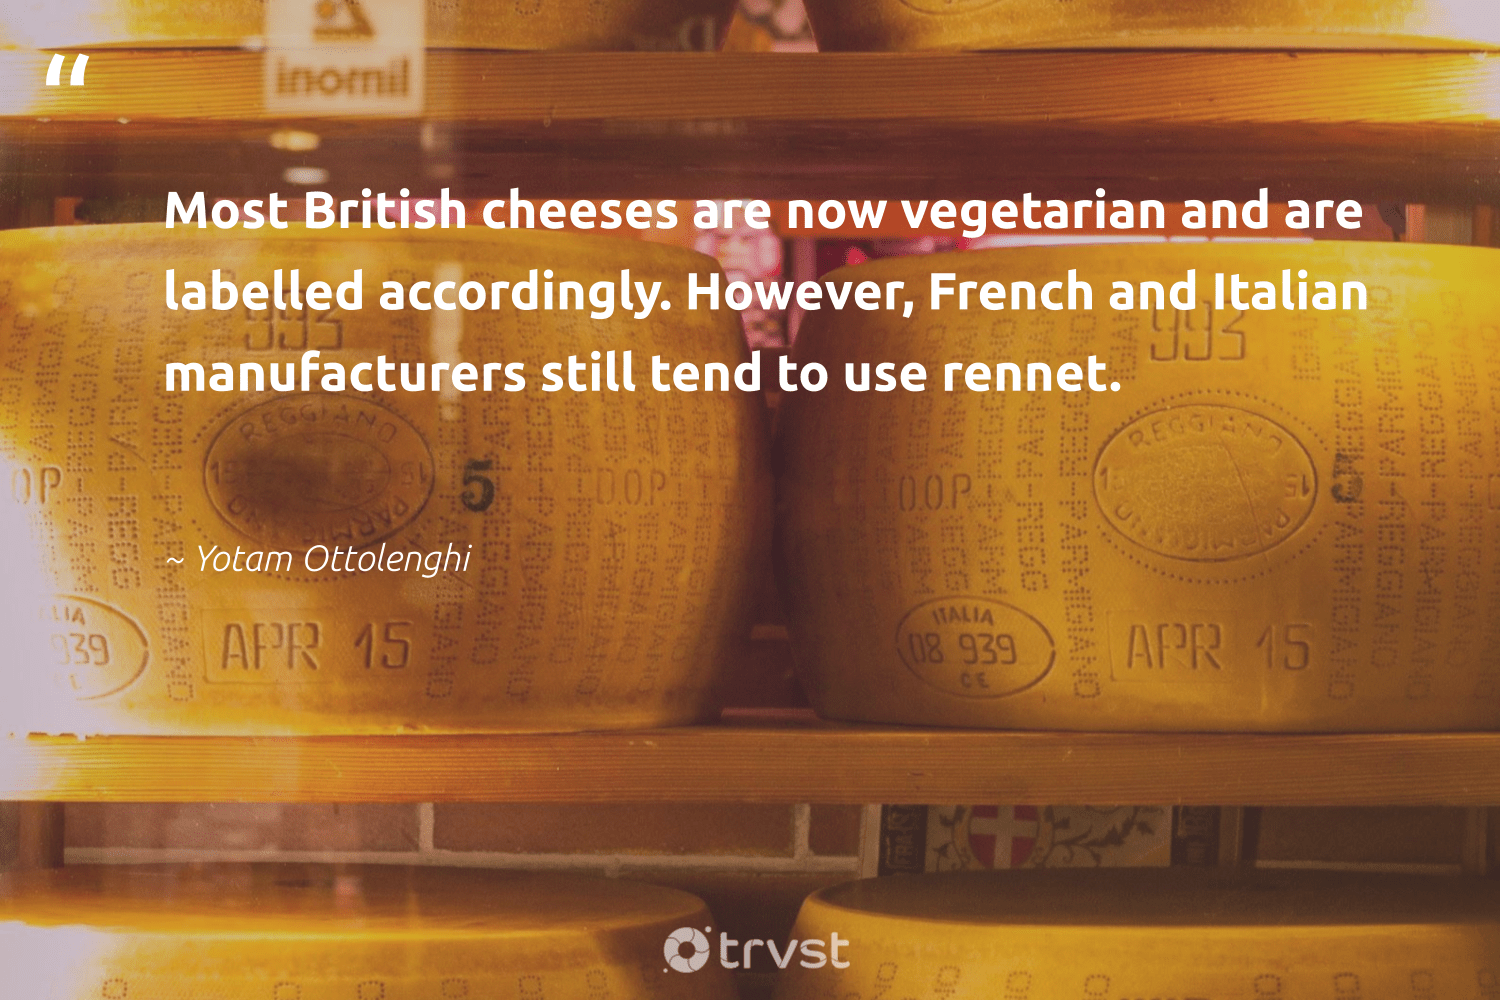 """""""Most British cheeses are now vegetarian and are labelled accordingly. However, French and Italian manufacturers still tend to use rennet.""""  - Yotam Ottolenghi #trvst #quotes #vegan #vegetarian #govegan #gogreen #sustainability #socialchange #veganfood #green #sustainable #ecoconscious"""